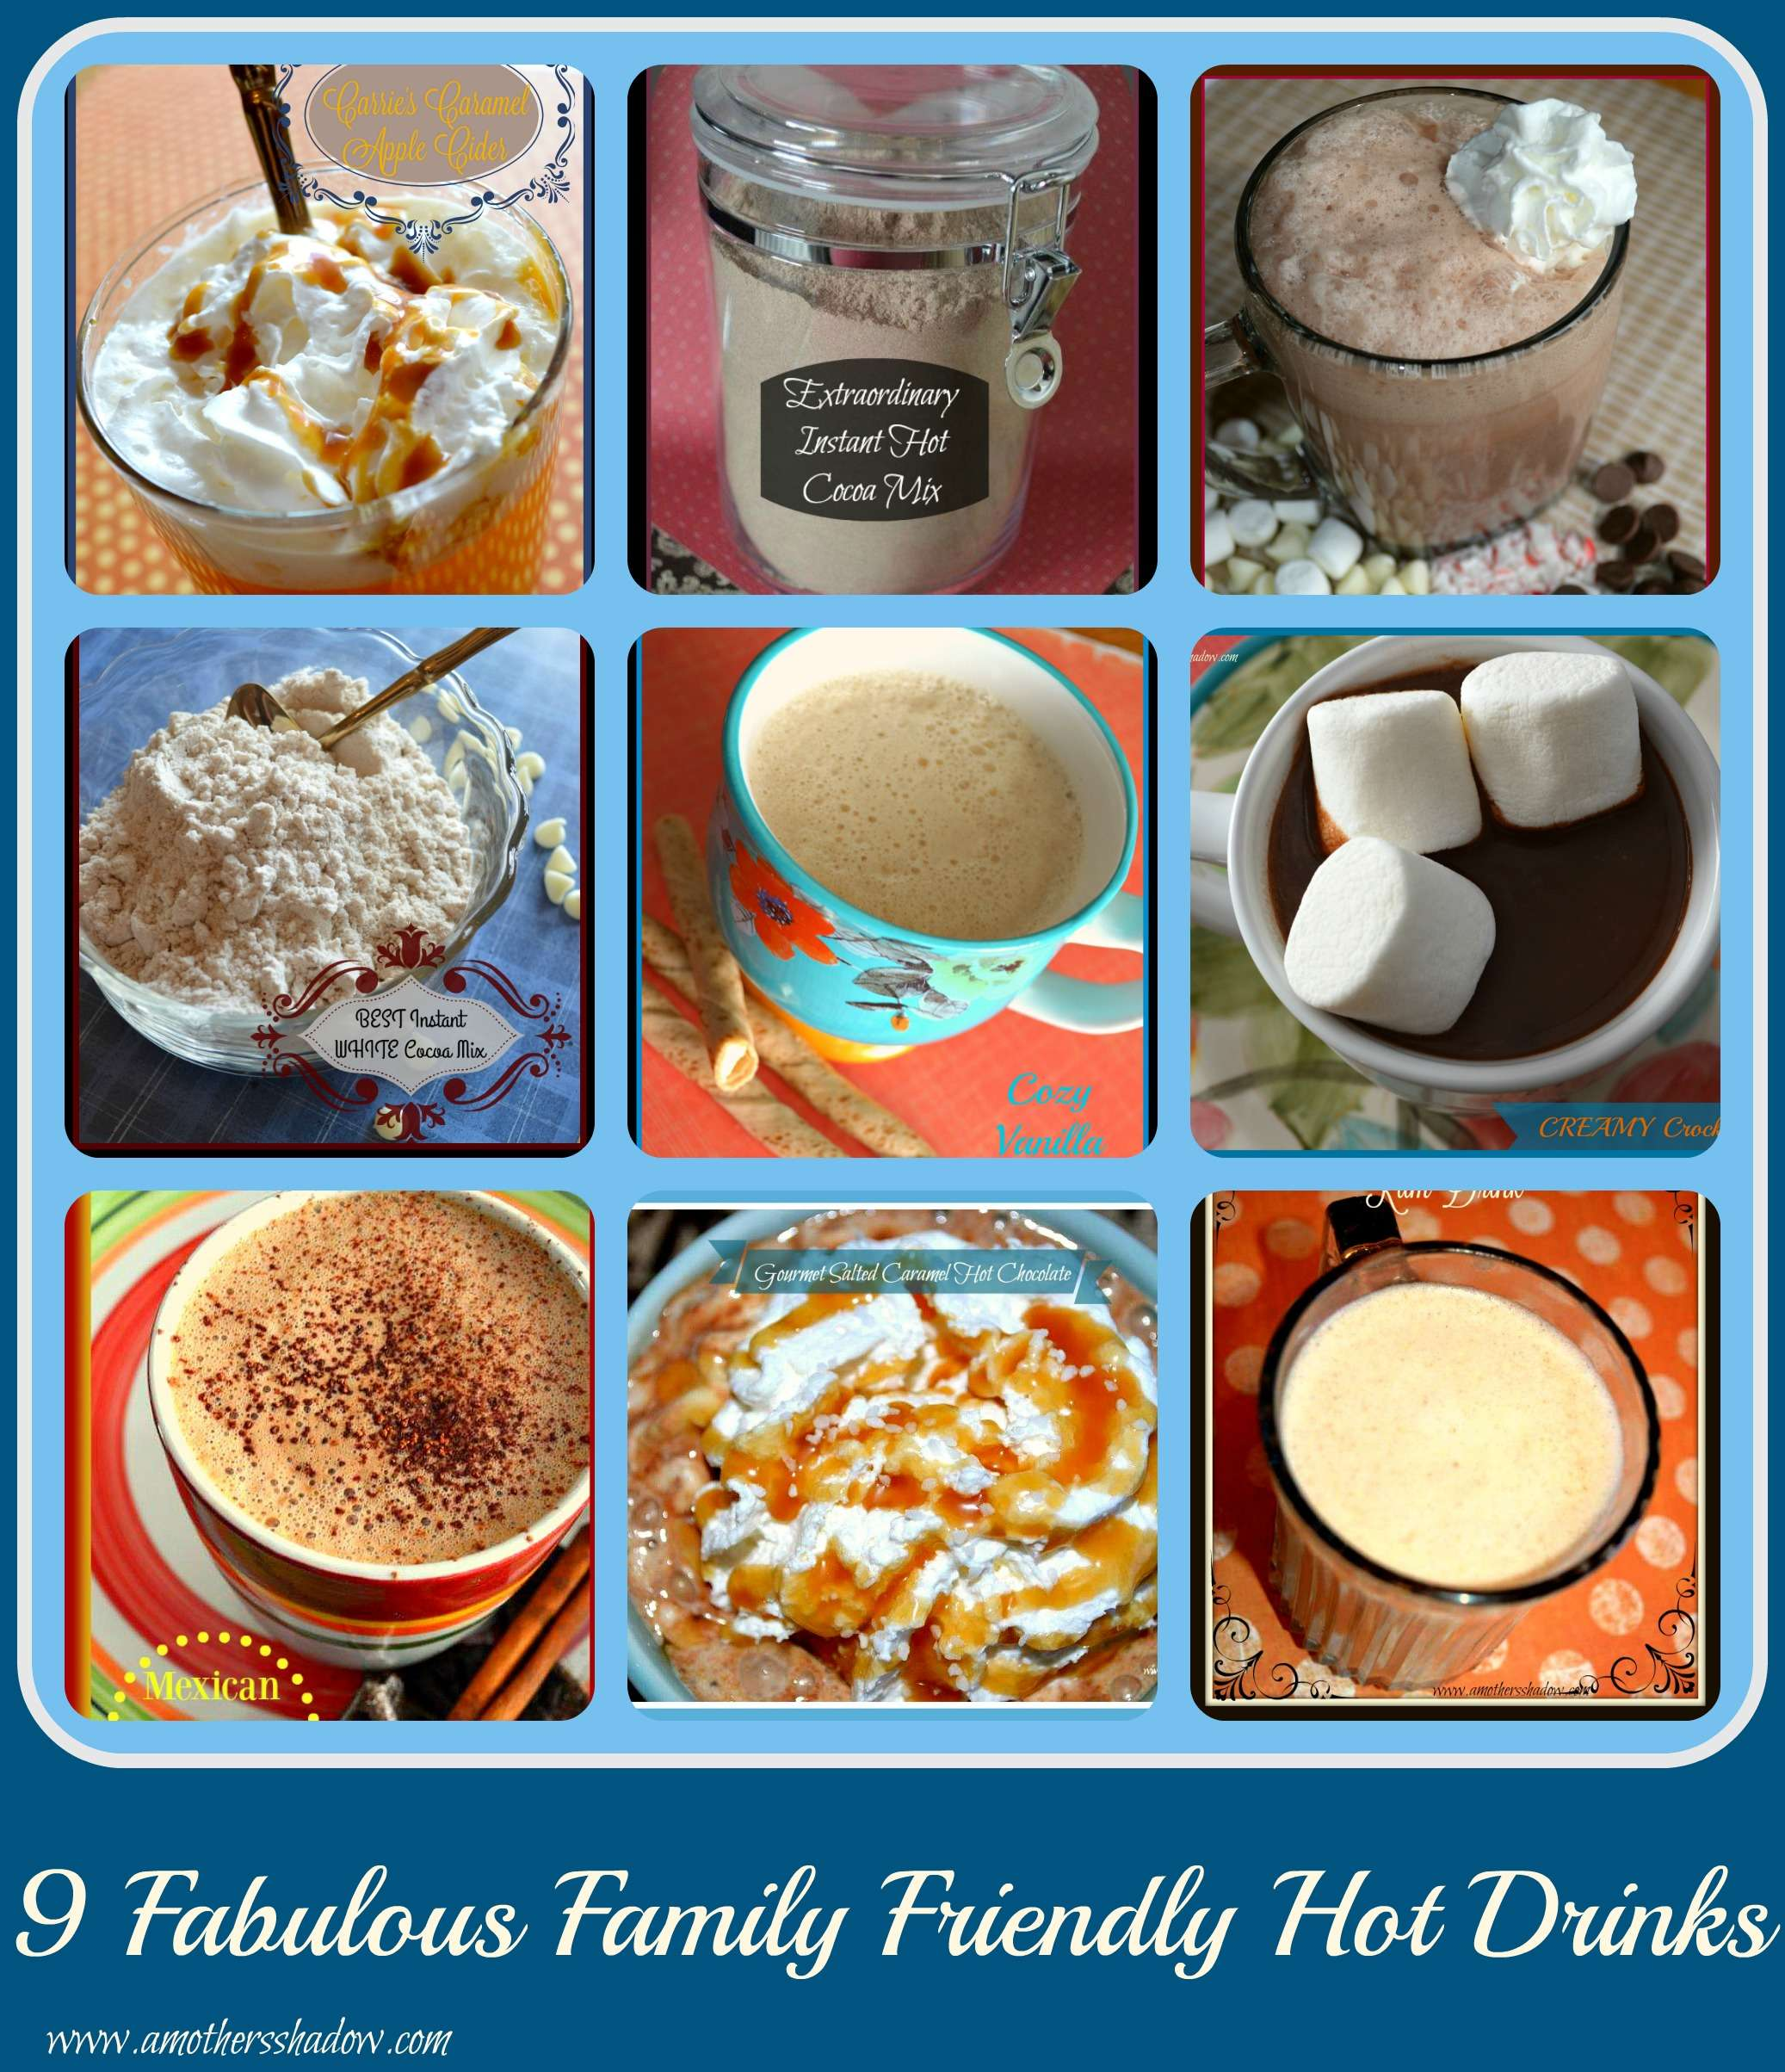 9 Fabulous Family Friendly Hot Drinks